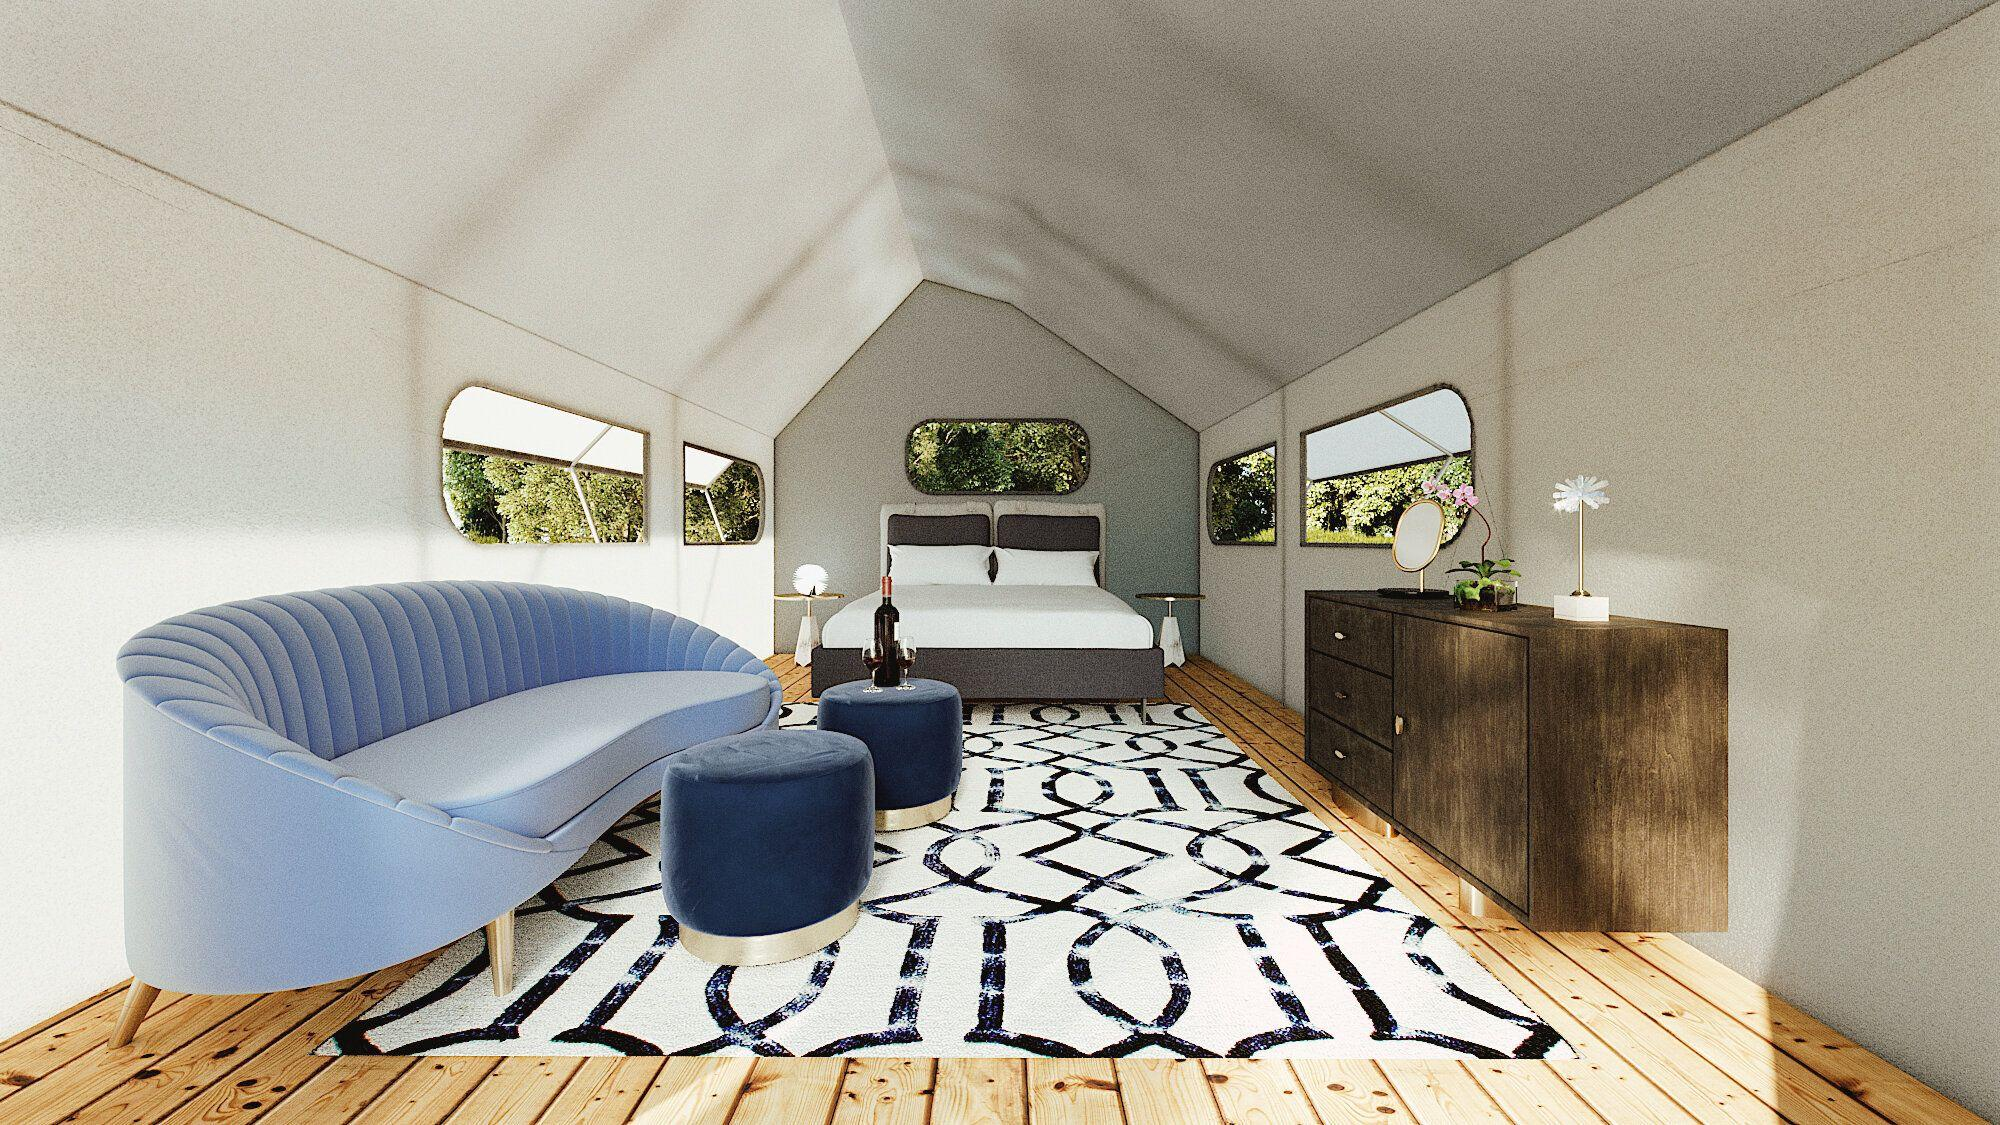 This business sells 'the full solution' to glamping